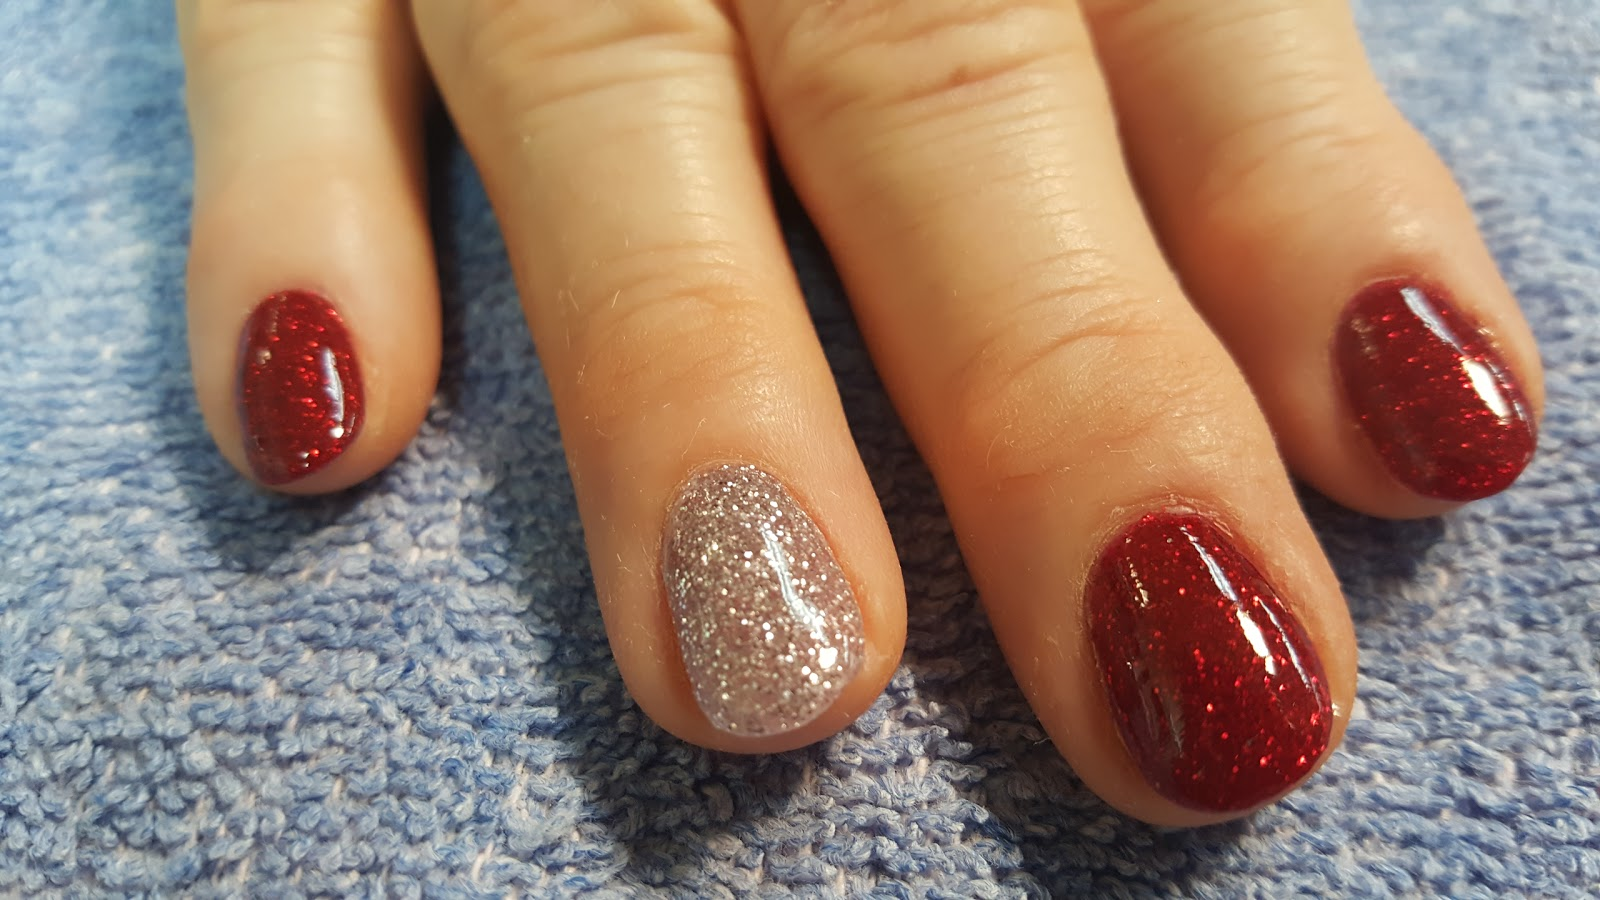 Envy Nails, 1540 South Main Street, Ottawa, Reviews and Appointments ...